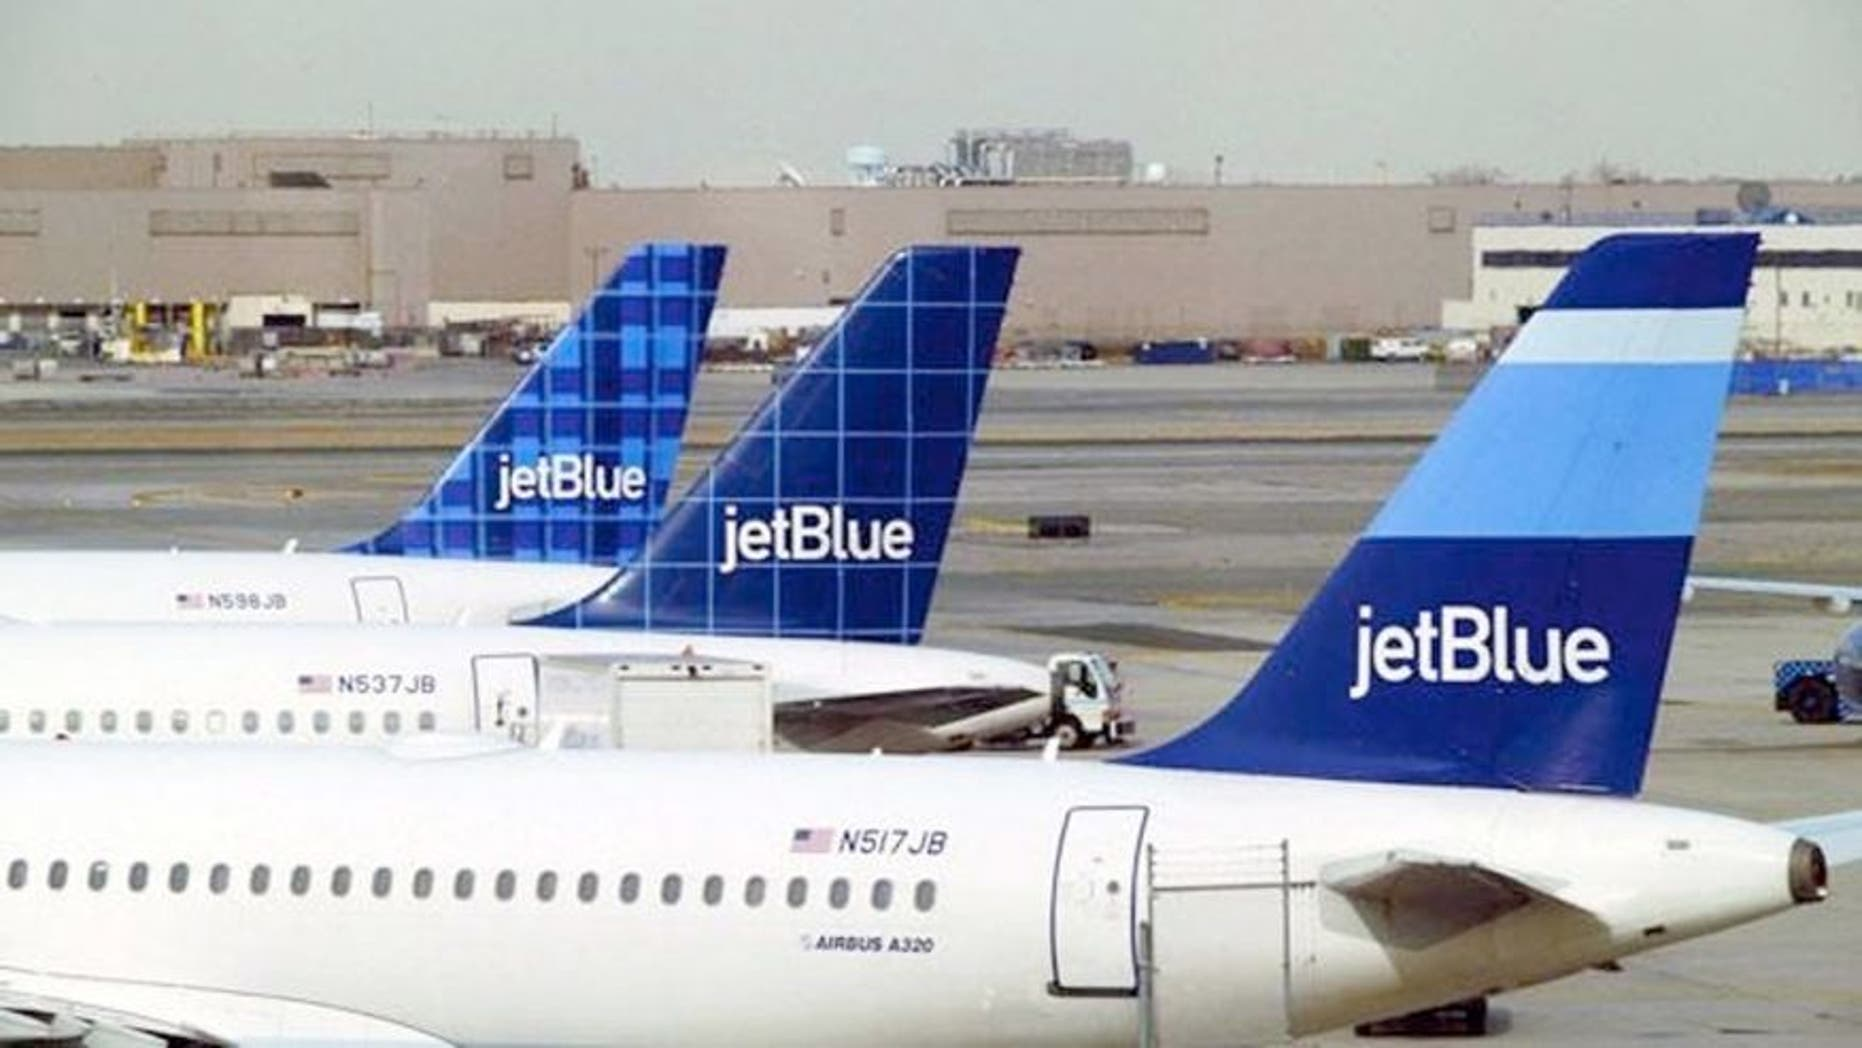 A JetBlue flight heading from New York to Denver was delayed after a truck carrying toilet waste crashed into the aircraft.